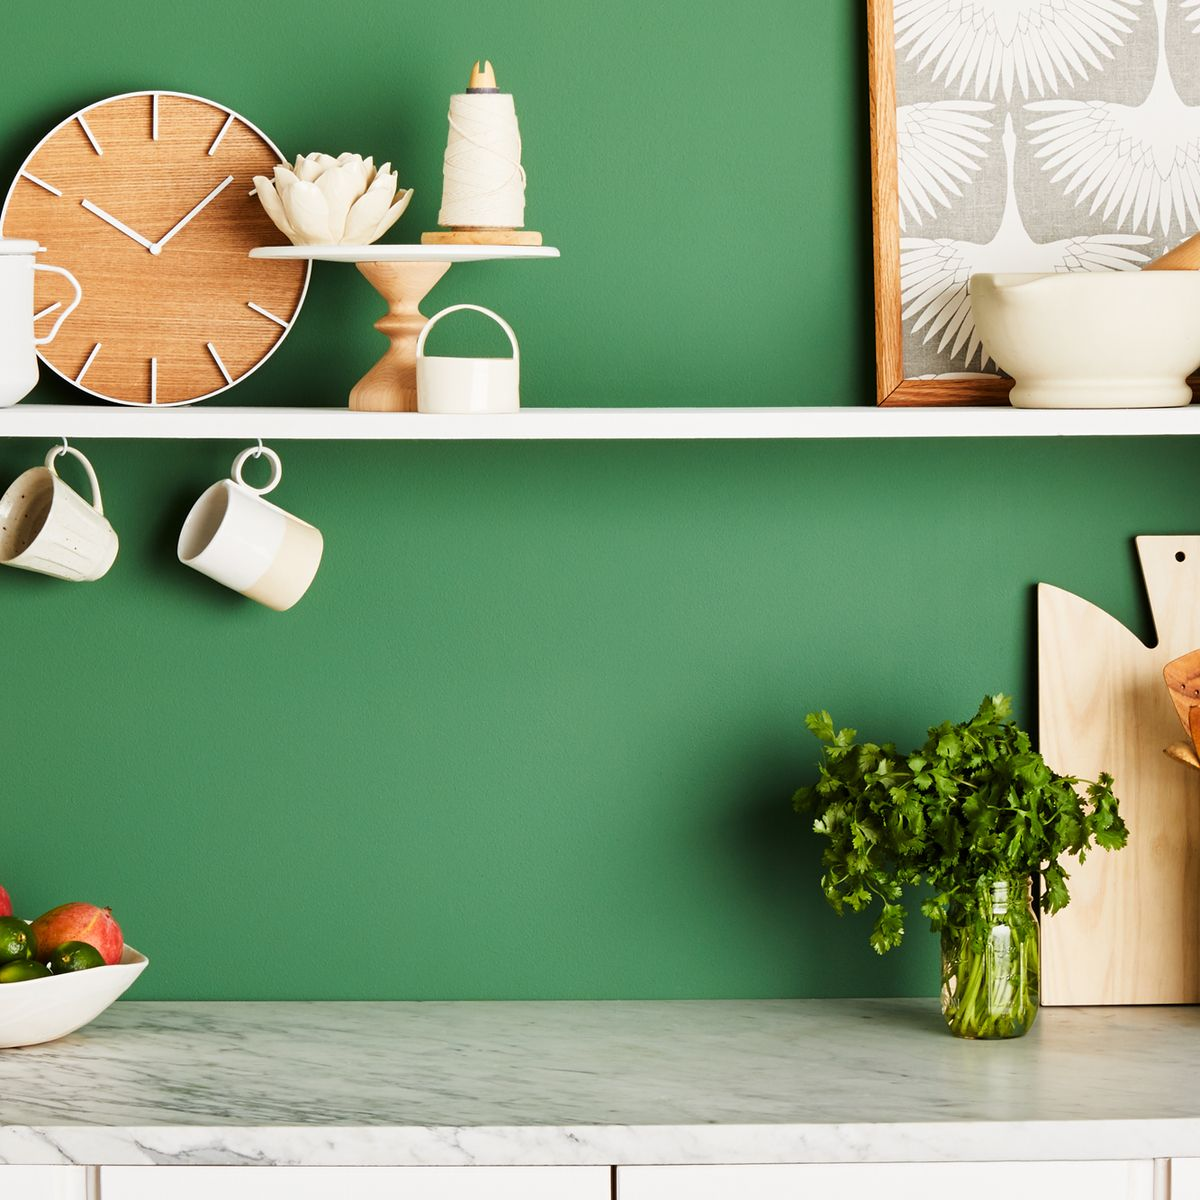 5 Best Kitchen Design Tips For A Bright Color Filled Space